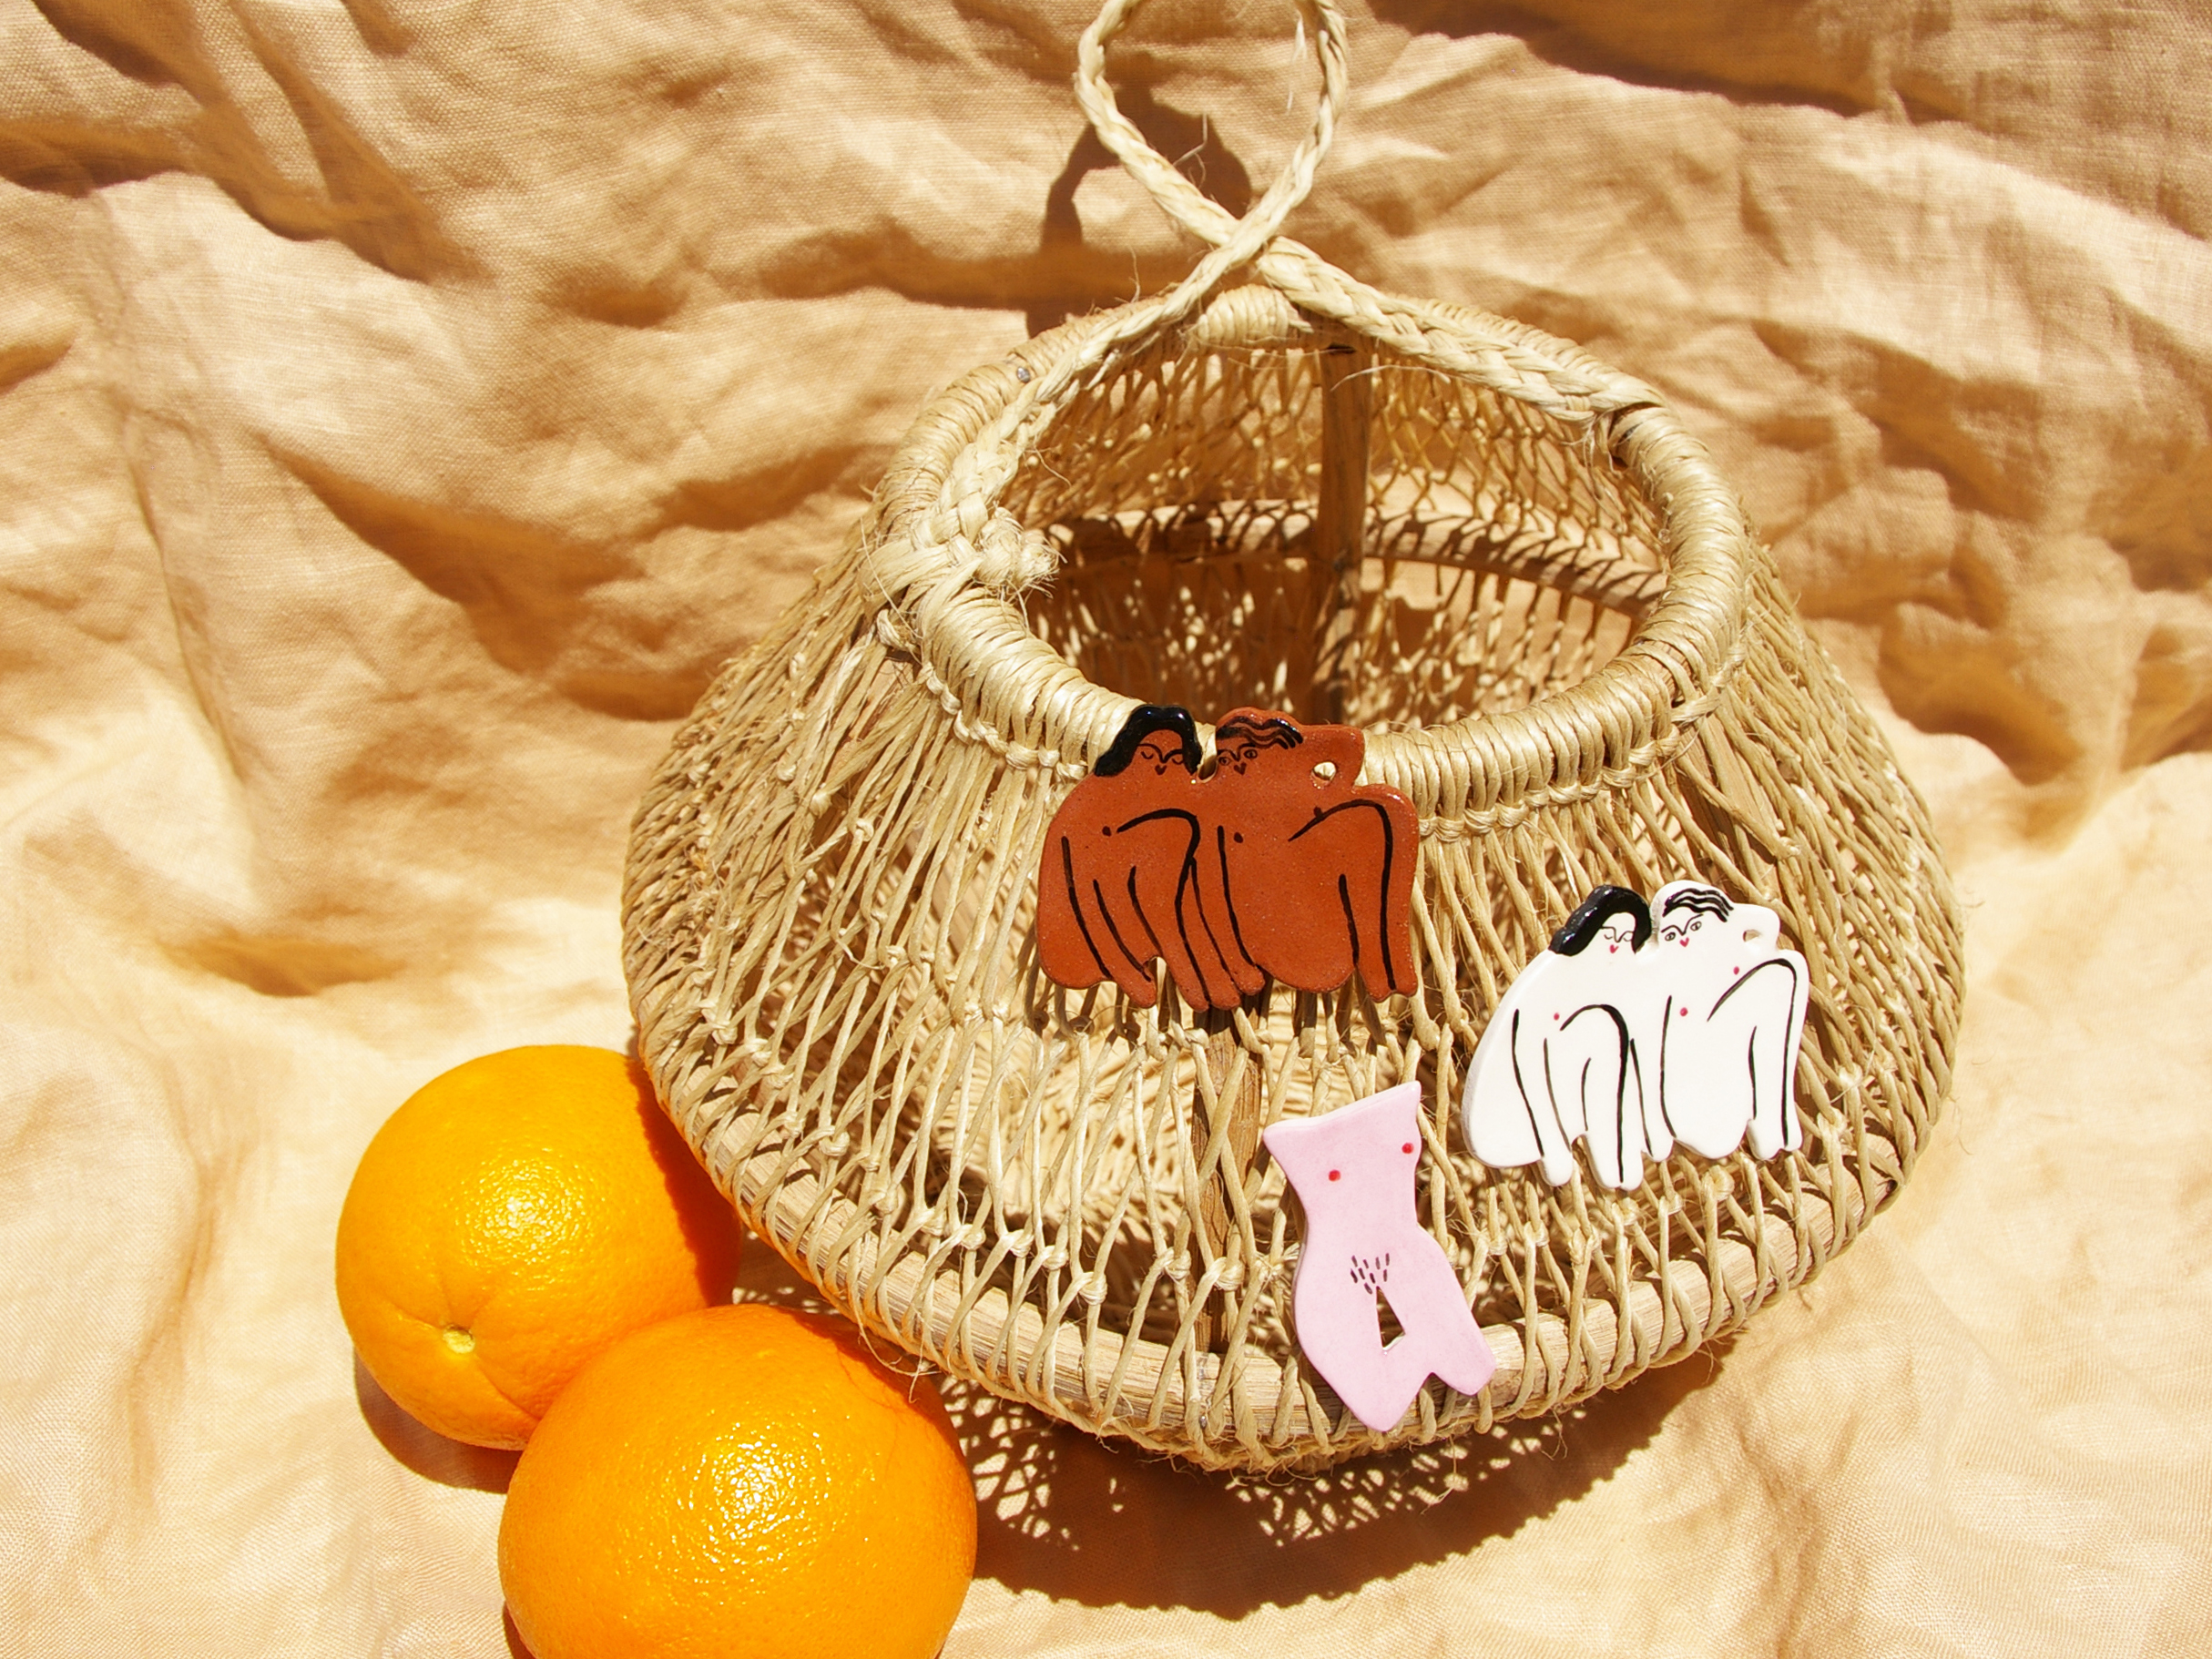 Liv & Dom brooches on Hecho egg basket